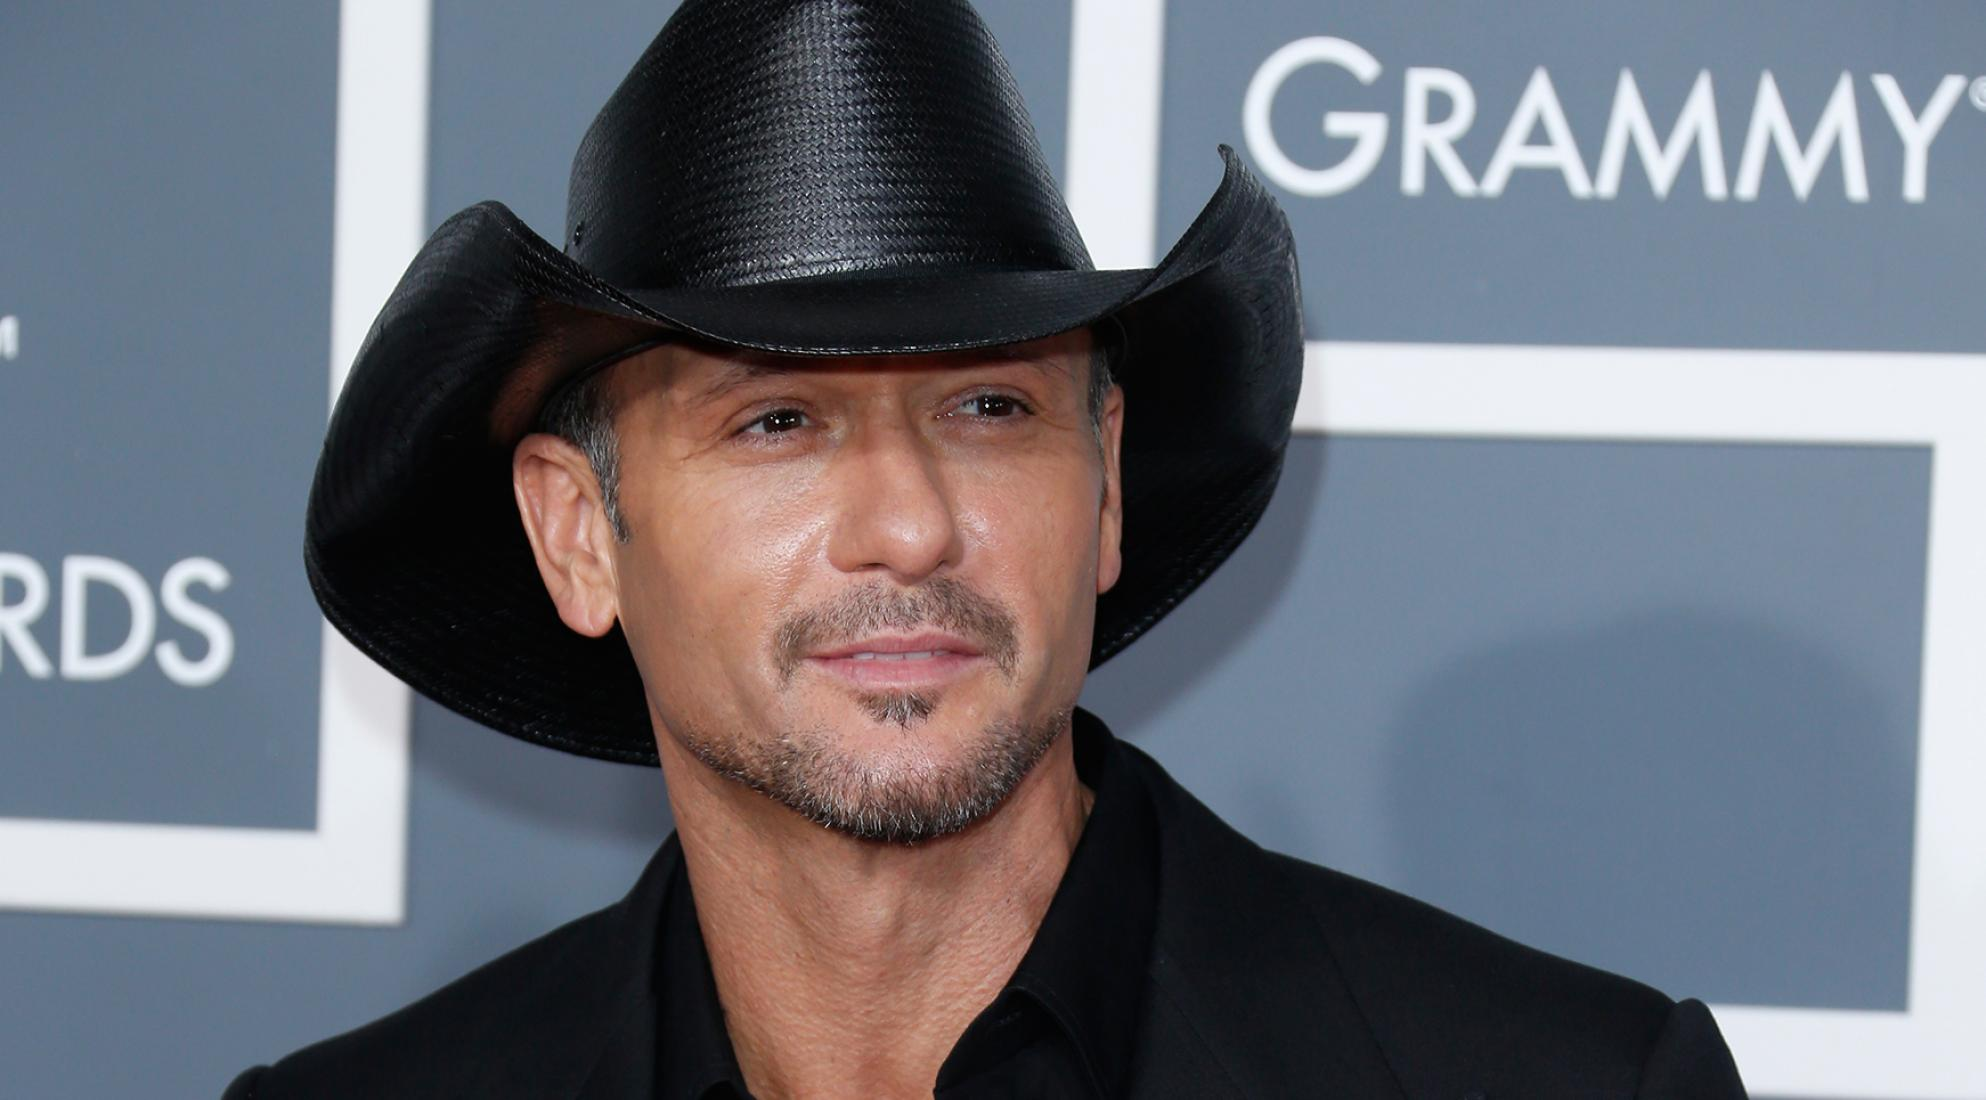 Tim Mcgraw as a Pi Kappa Alpha